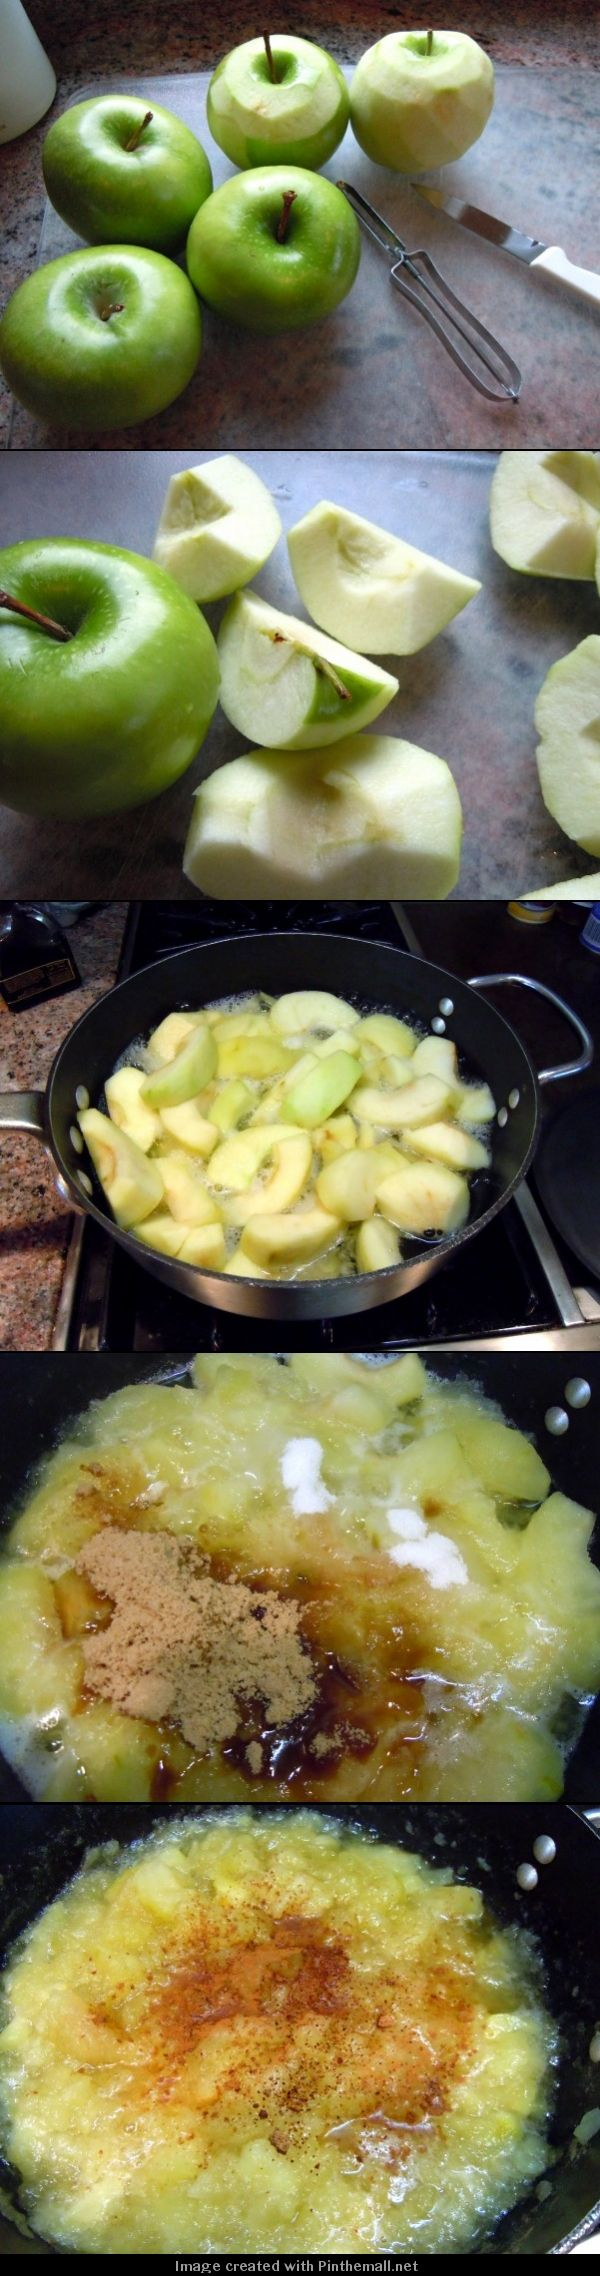 Homemade Apple Sauce Ingredients: 2 tablespoons butter 1 teaspoon cinnamon 4 McIntosh apples, cored, peeled, and chopped 1/2 teaspoon nutmeg 2 tablespoons water 1/4 cup sugar Directions: Combine all ingredients in a saucepan and cook over medium heat until apples become very tender, about 30 minutes. Applesauce may be left lumpy or mashed with a fork to become smoother.